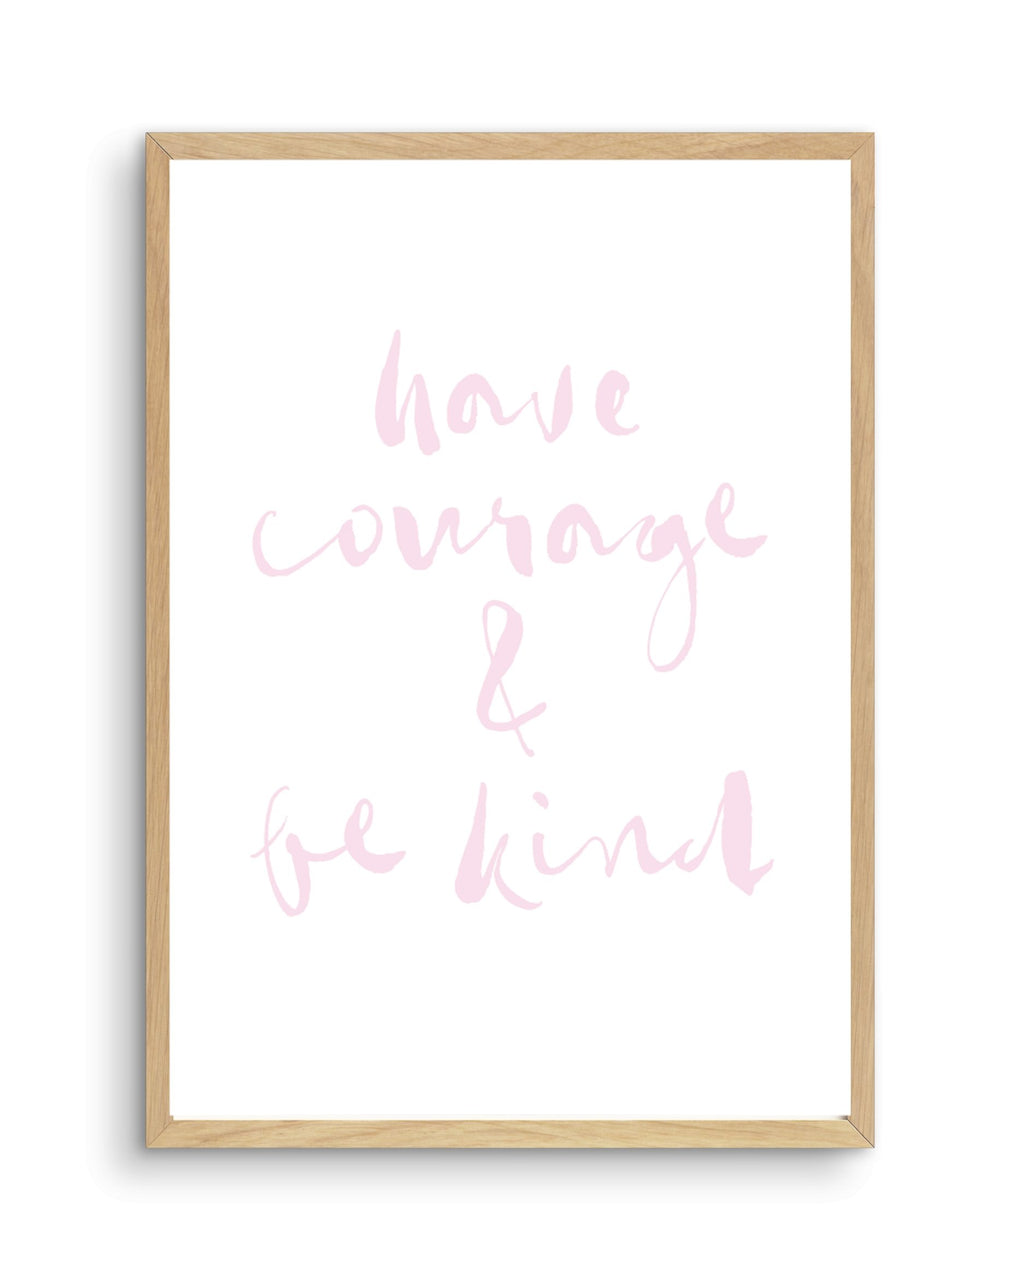 Have Courage and Be Kind | Blush - Olive et Oriel | Shop Art Prints & Posters Online